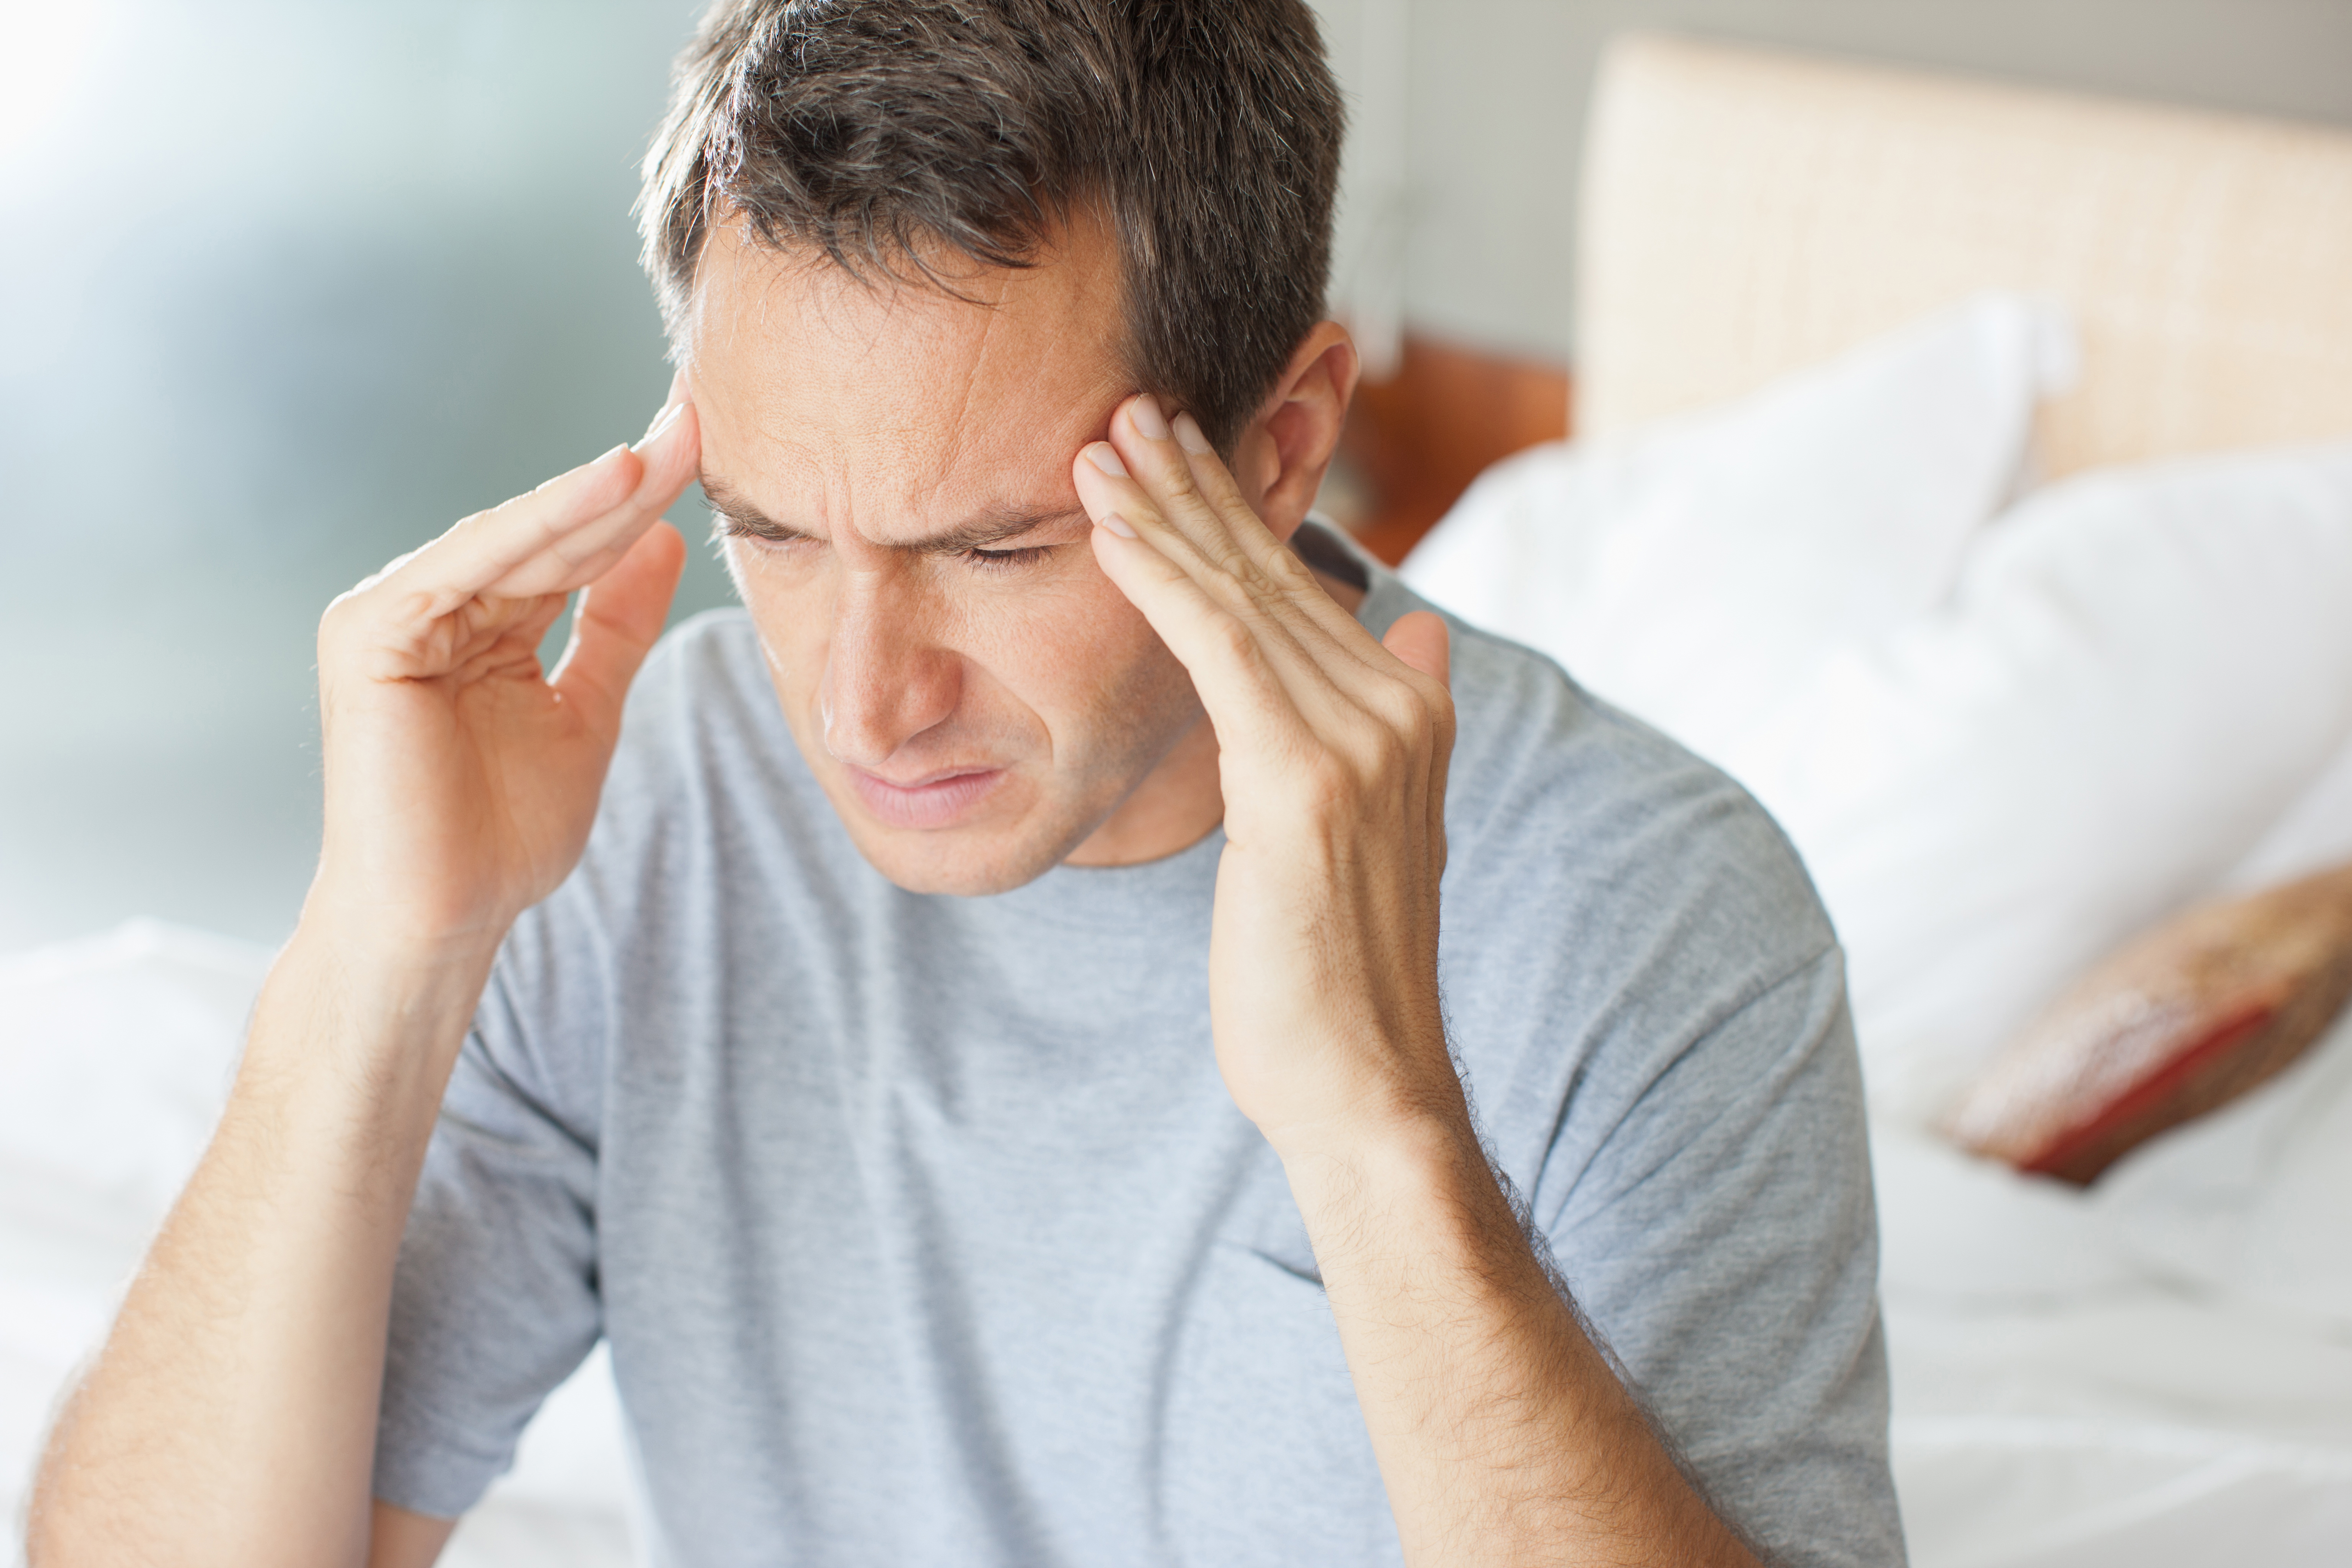 For headache prevention, identifying triggers is key